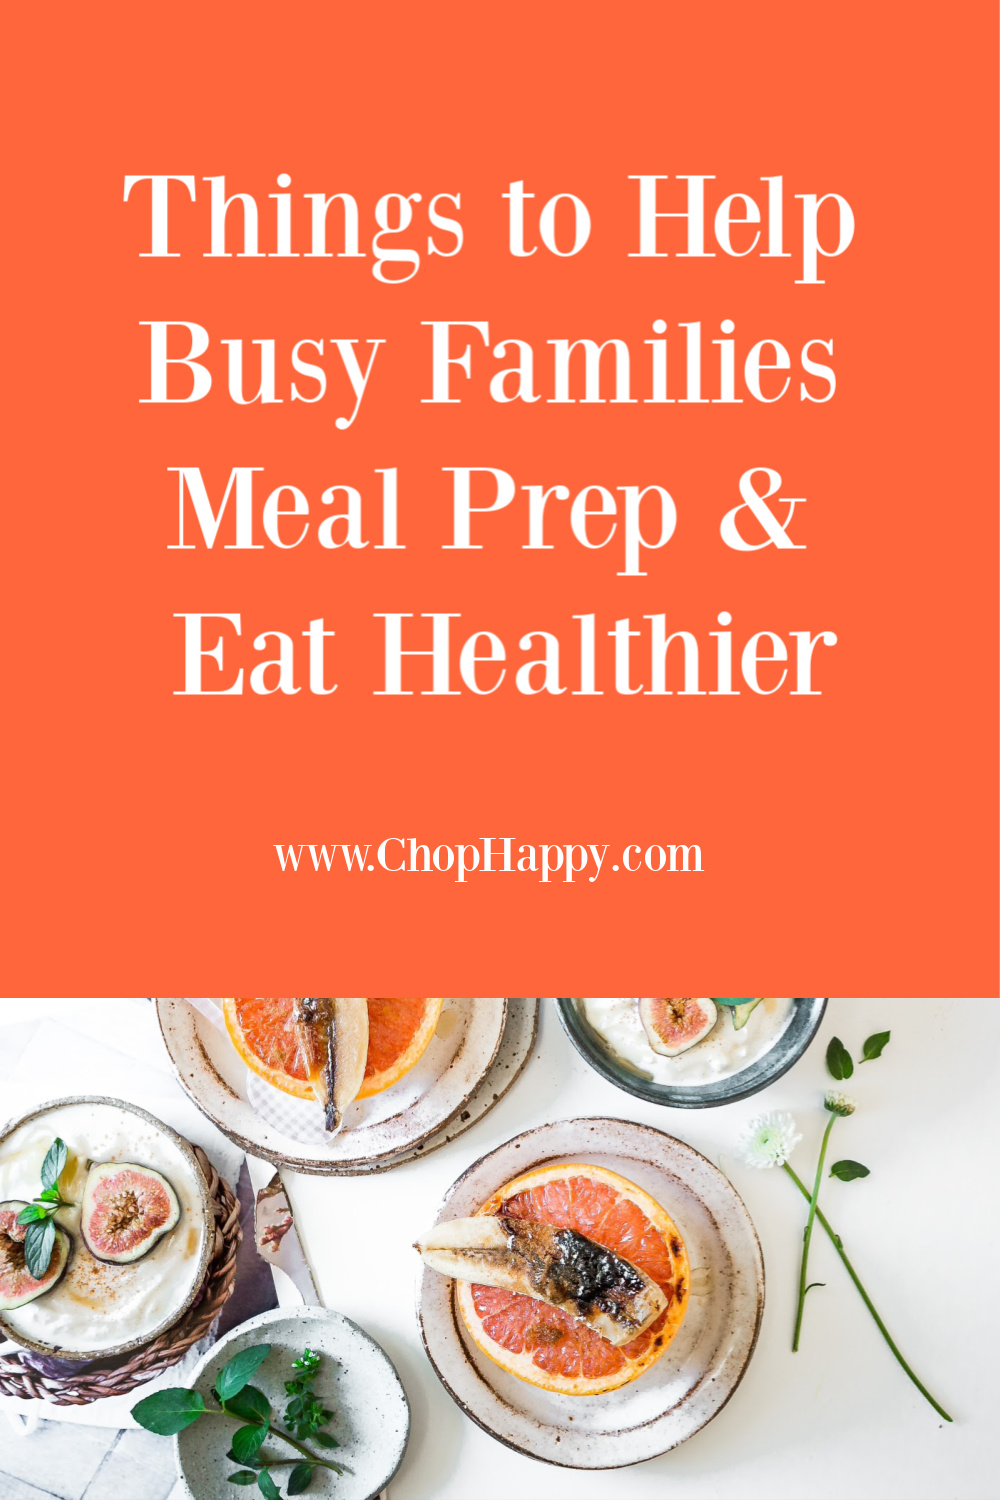 Things to Help Busy Families Meal Prep & Eat Healthier. Meal prep helps families get dinner on the table fast. Here are the top Amazon products to buy for meal prep. Happy Cooking! www.ChopHappy.com #mealprep #eathealthier